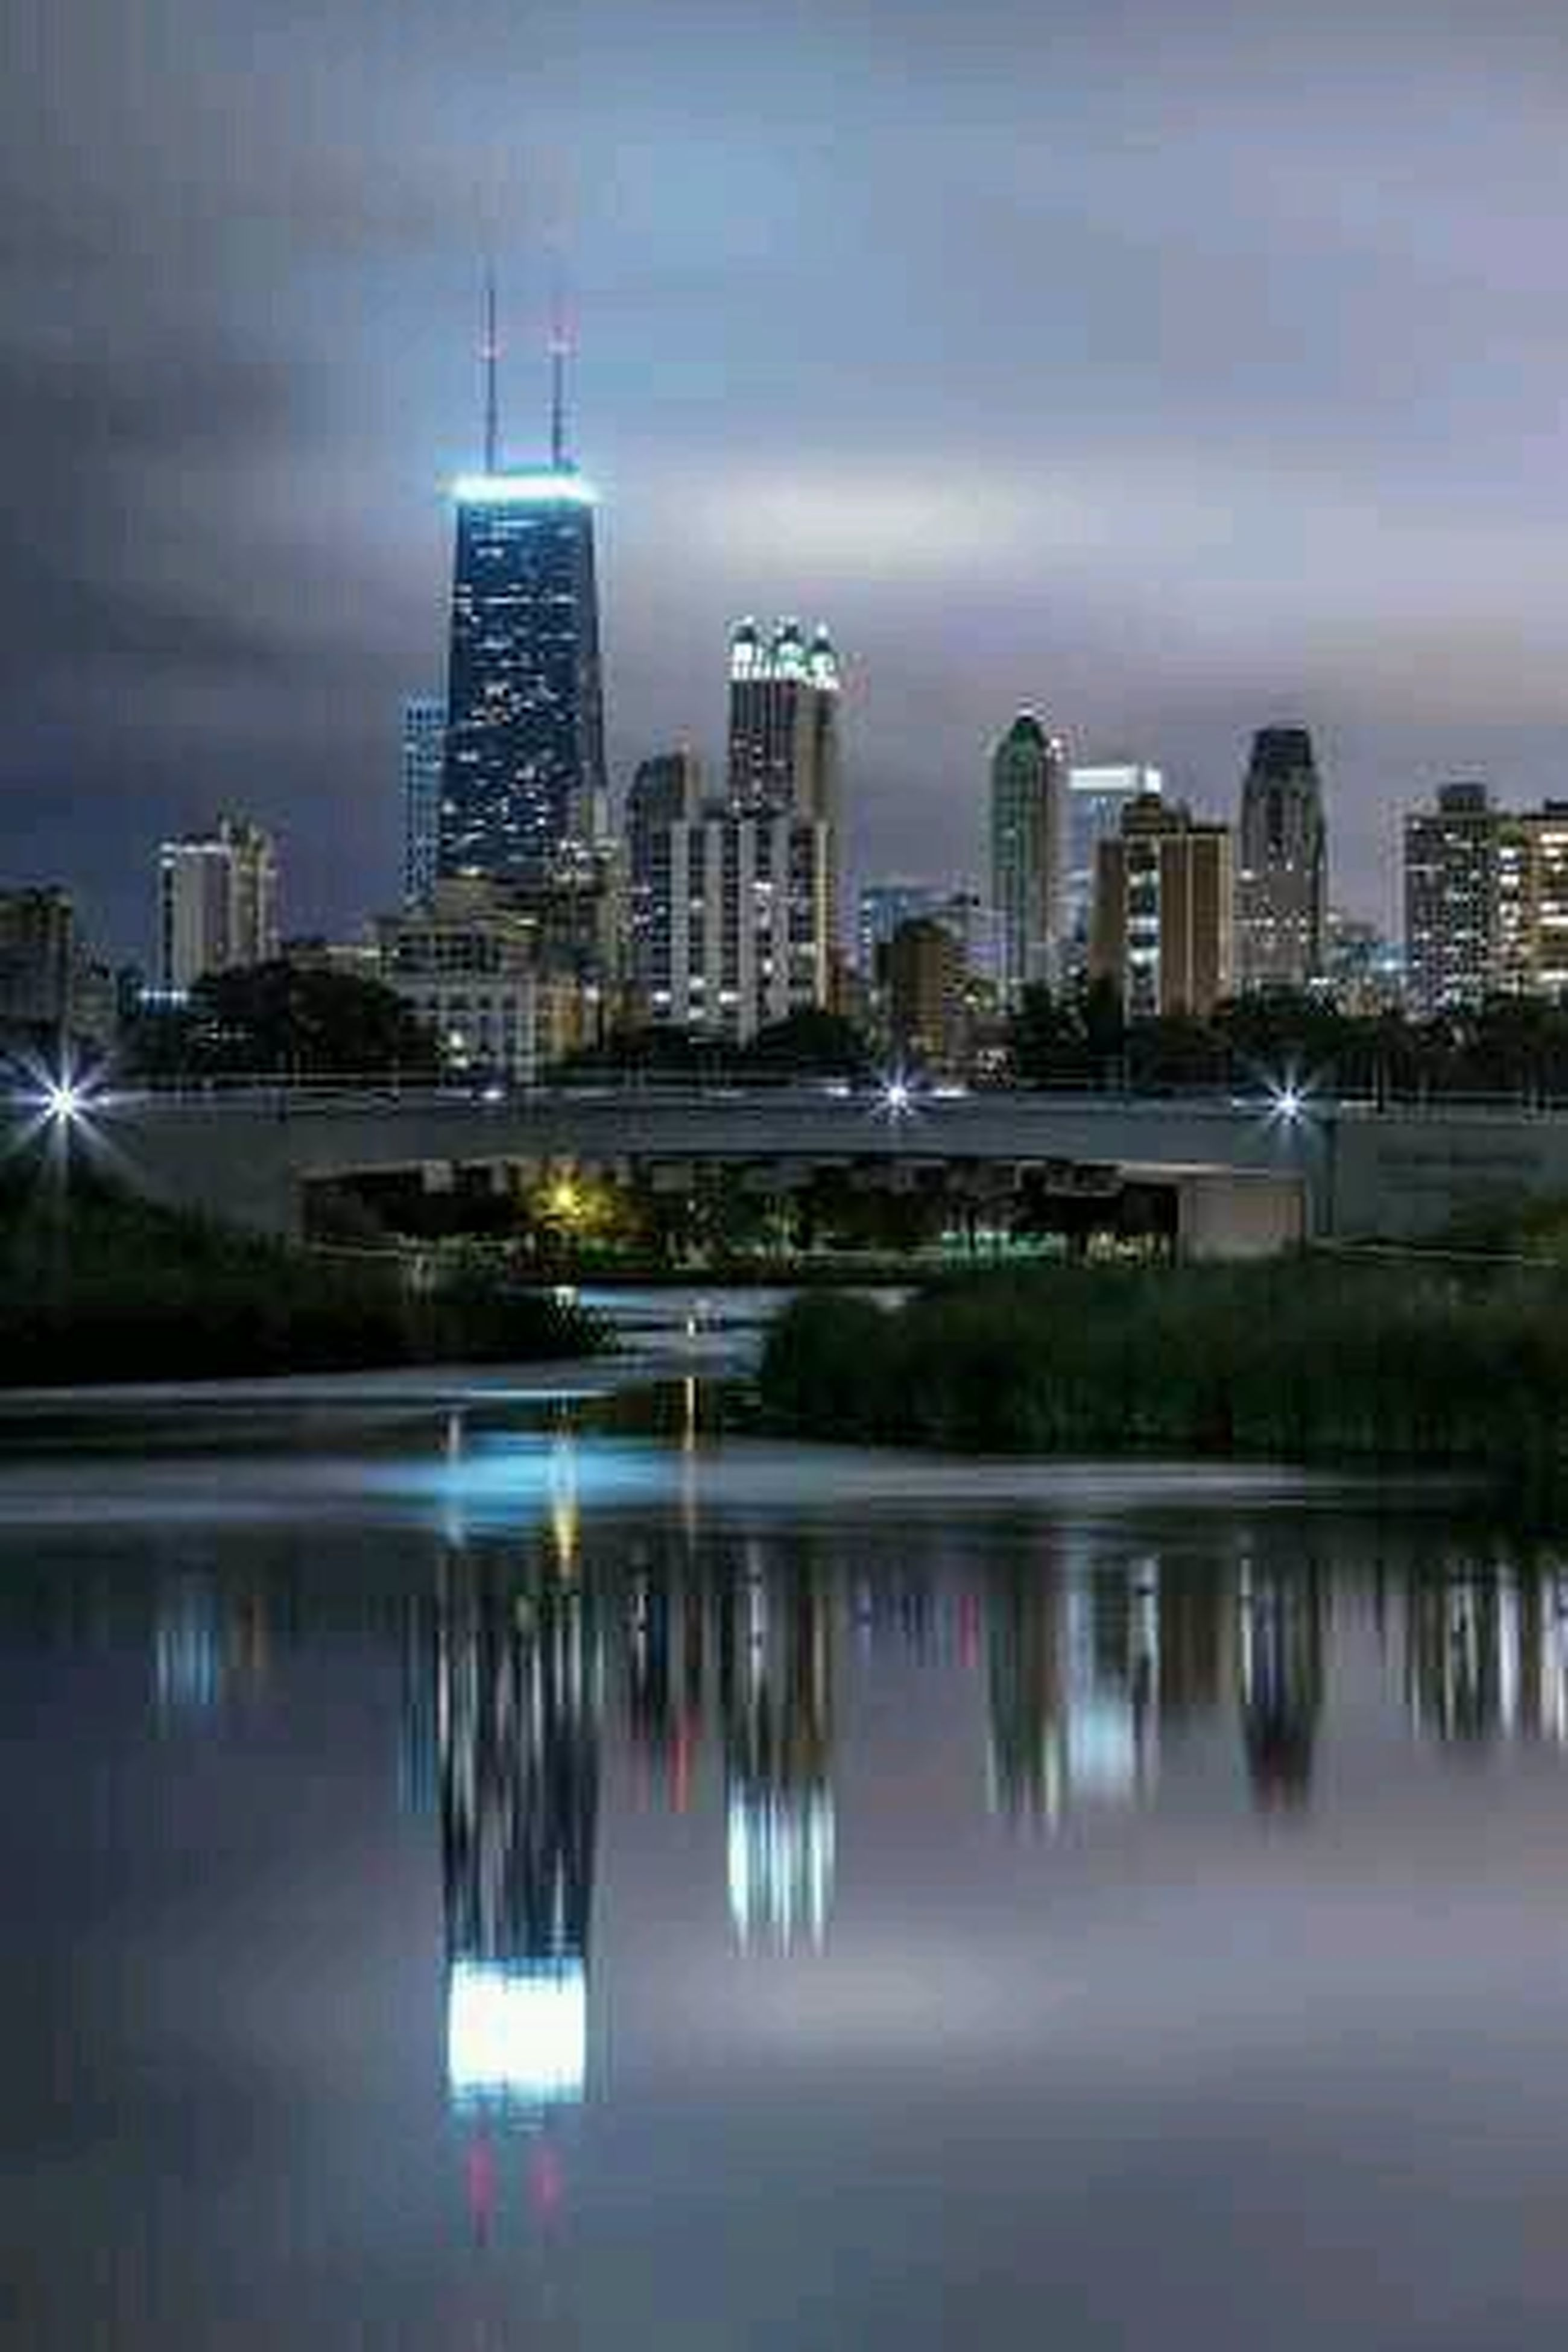 building exterior, city, architecture, skyscraper, built structure, cityscape, water, waterfront, illuminated, urban skyline, reflection, modern, sky, office building, tall - high, river, tower, financial district, night, skyline